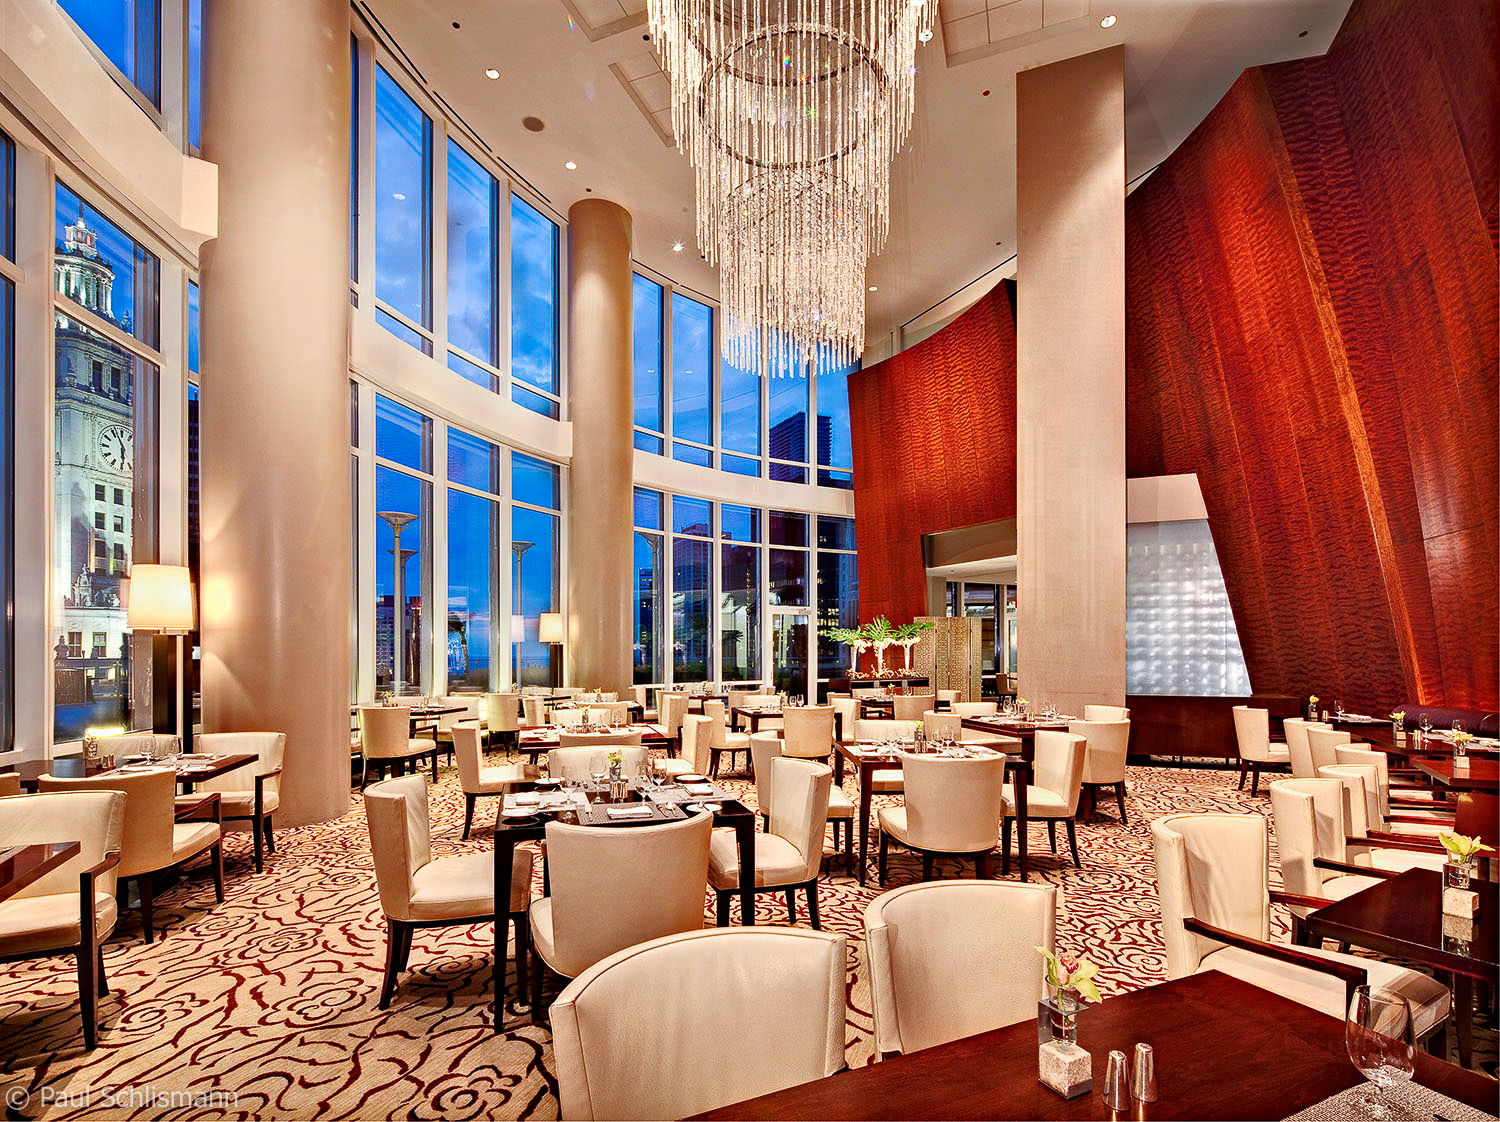 Chicago Architectural Photographer | Restaurant of Trump Tower, Chicago IL.